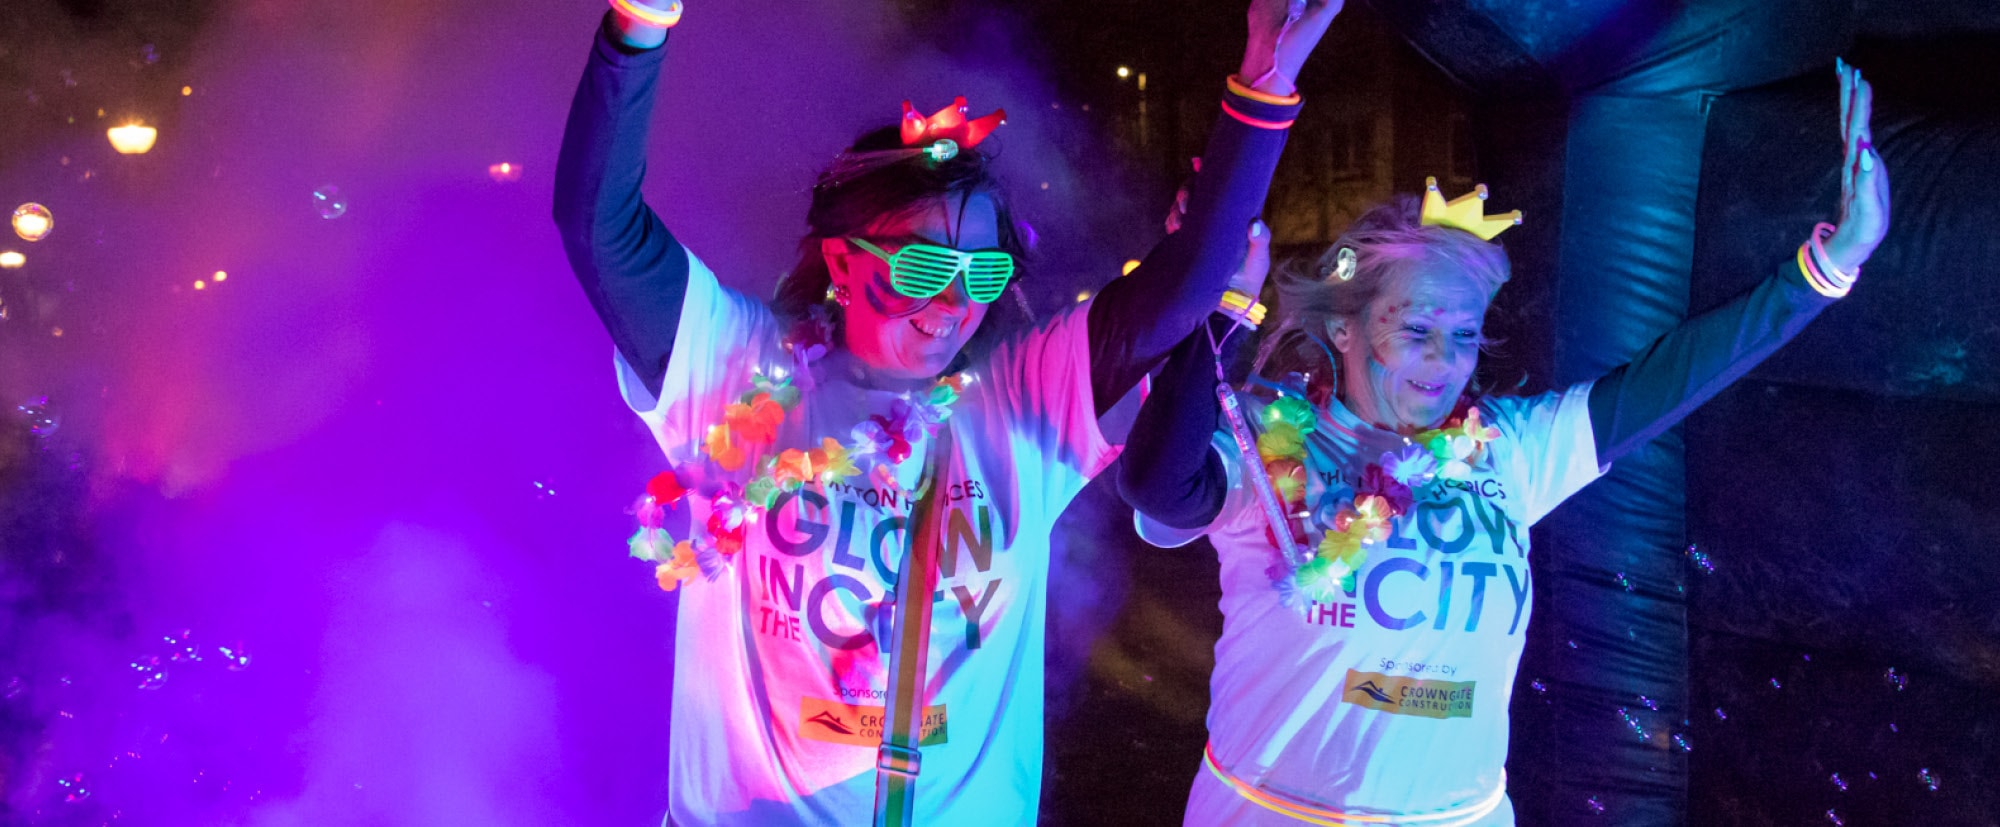 The Myton Hospices Events Glow In The City 2018